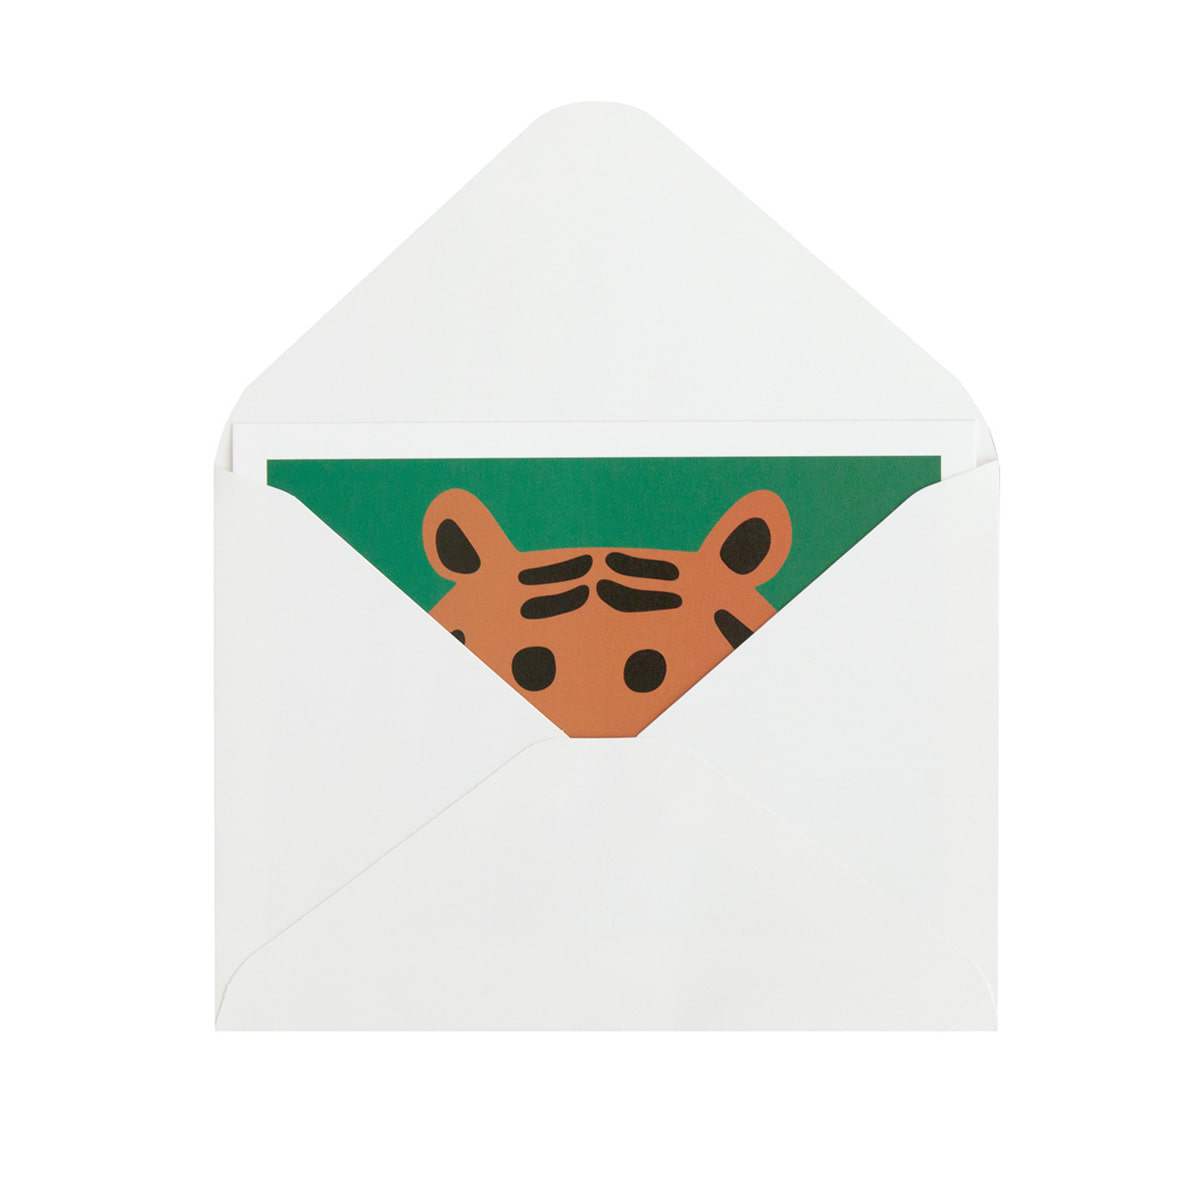 POSTCARD ENVELOPE - 엽서봉투